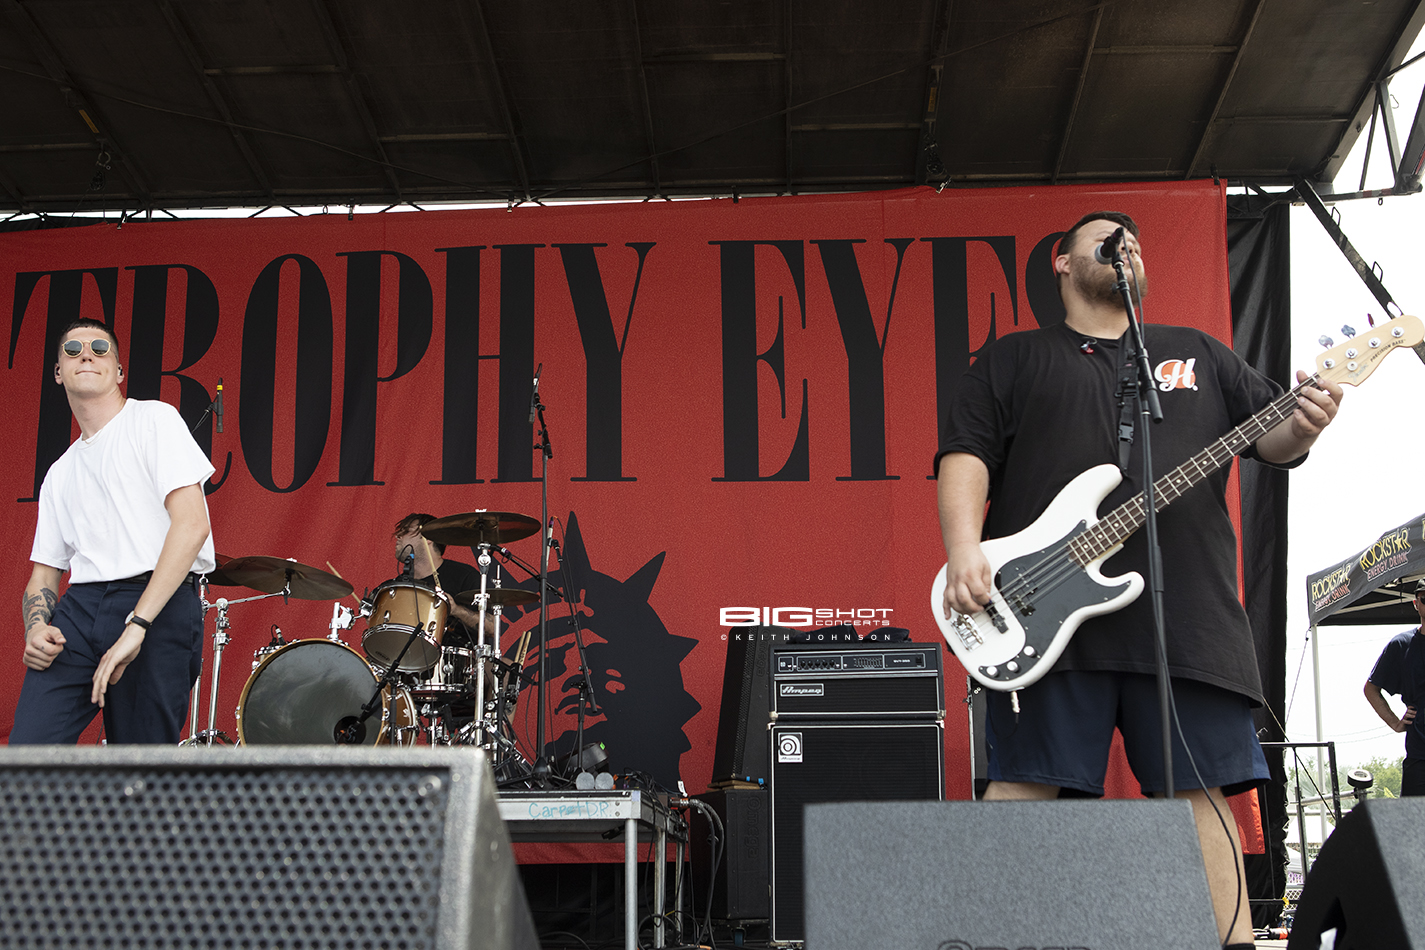 Festival Stage Band Trophy Eyes at Rockstar Energy Disrupt Festival